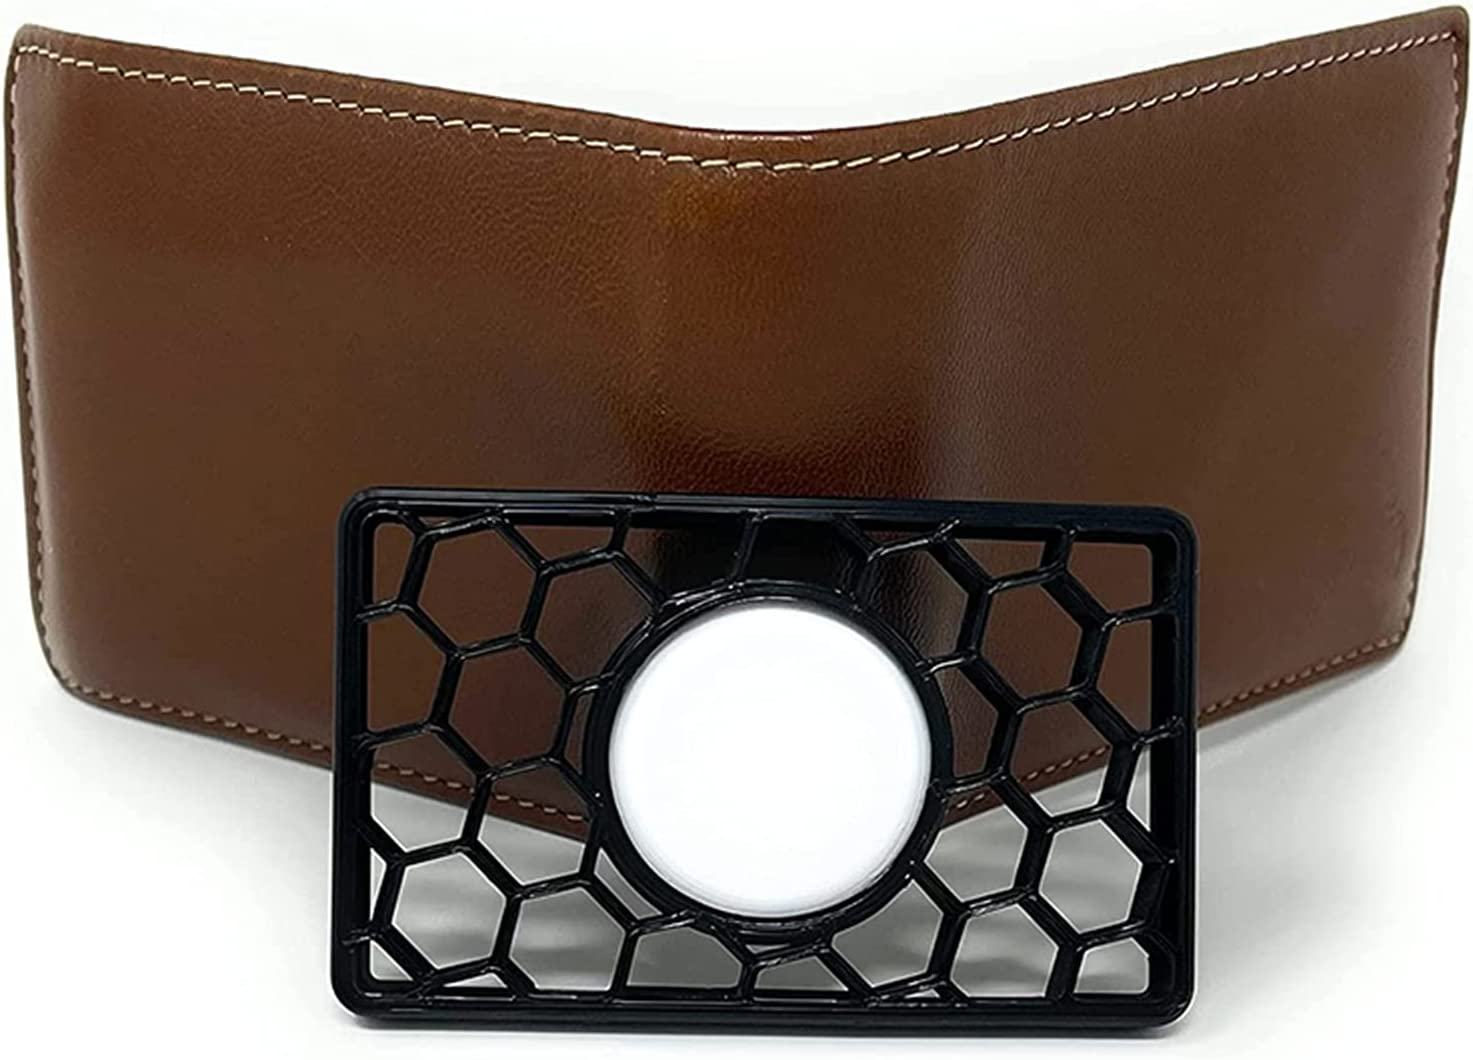 JZENZERO Wallet Case Compatible with AirTag Credit Card-Sized Holder for Wallet Clutch Wristlet